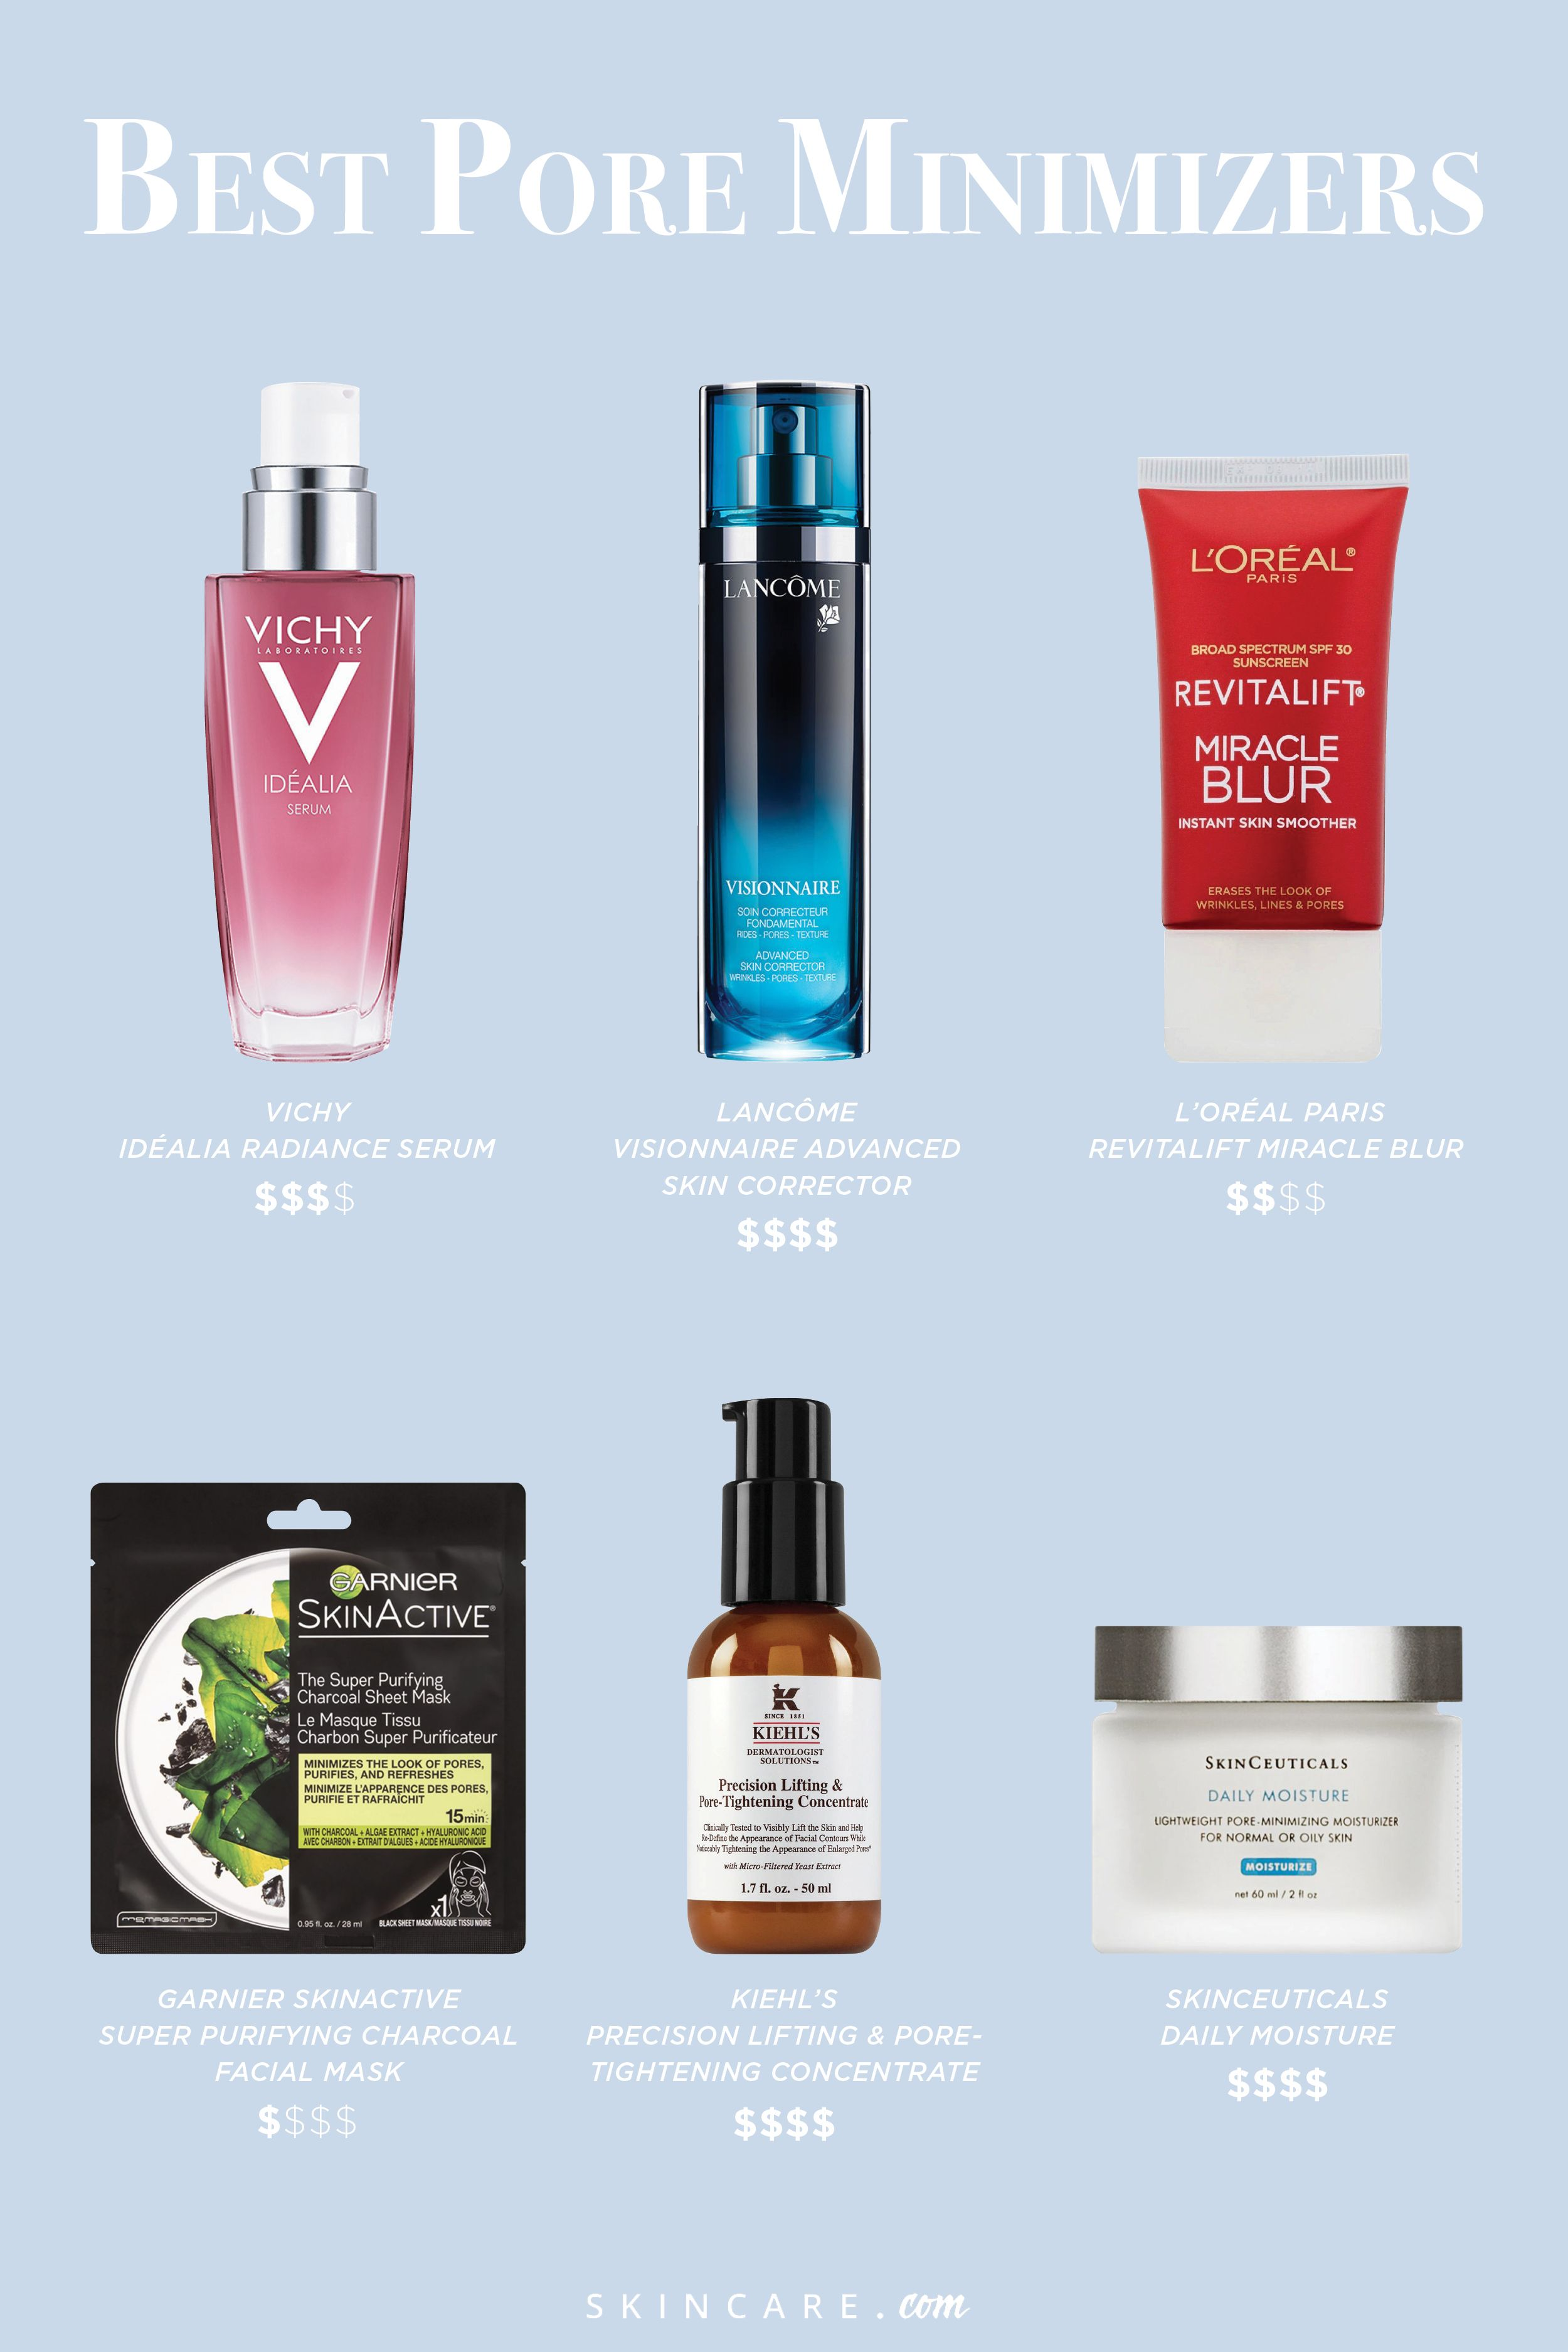 Large Pores These 7 Products Can Help Minimize Their Appearance Skincare Com By L Oreal Best Pore Minimizer Minimize Pores Skin Care